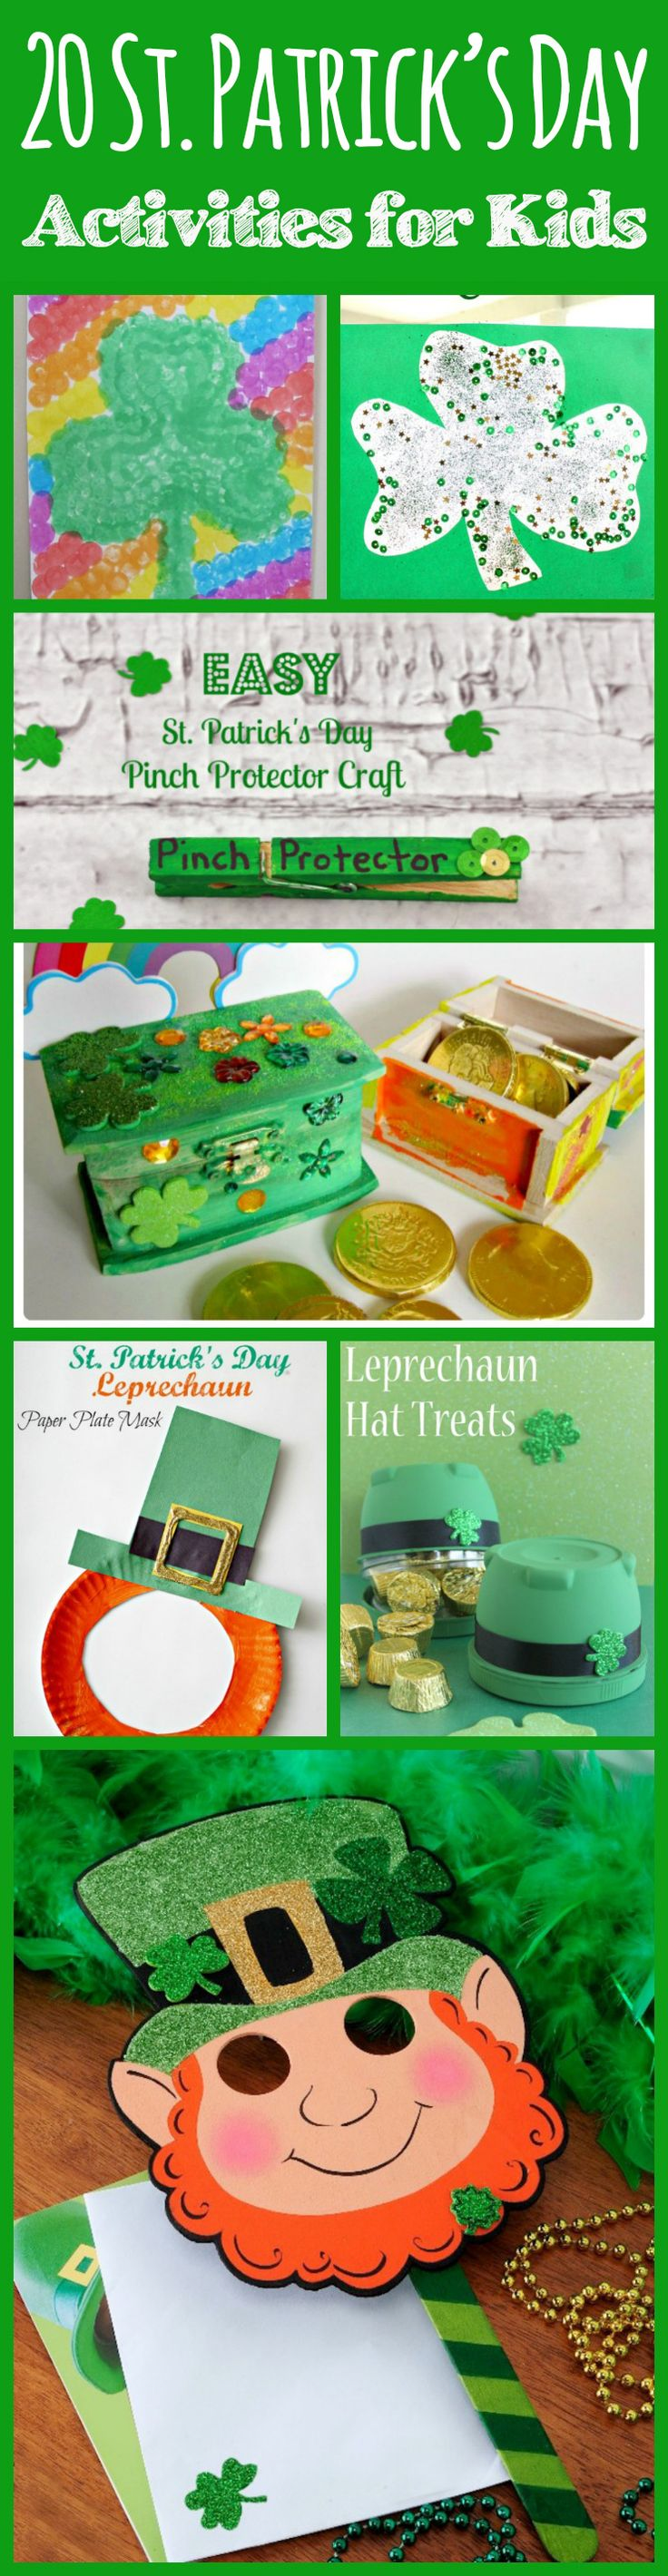 St patricks crafts for preschoolers - 20 St Patrick S Day Activities For Kids